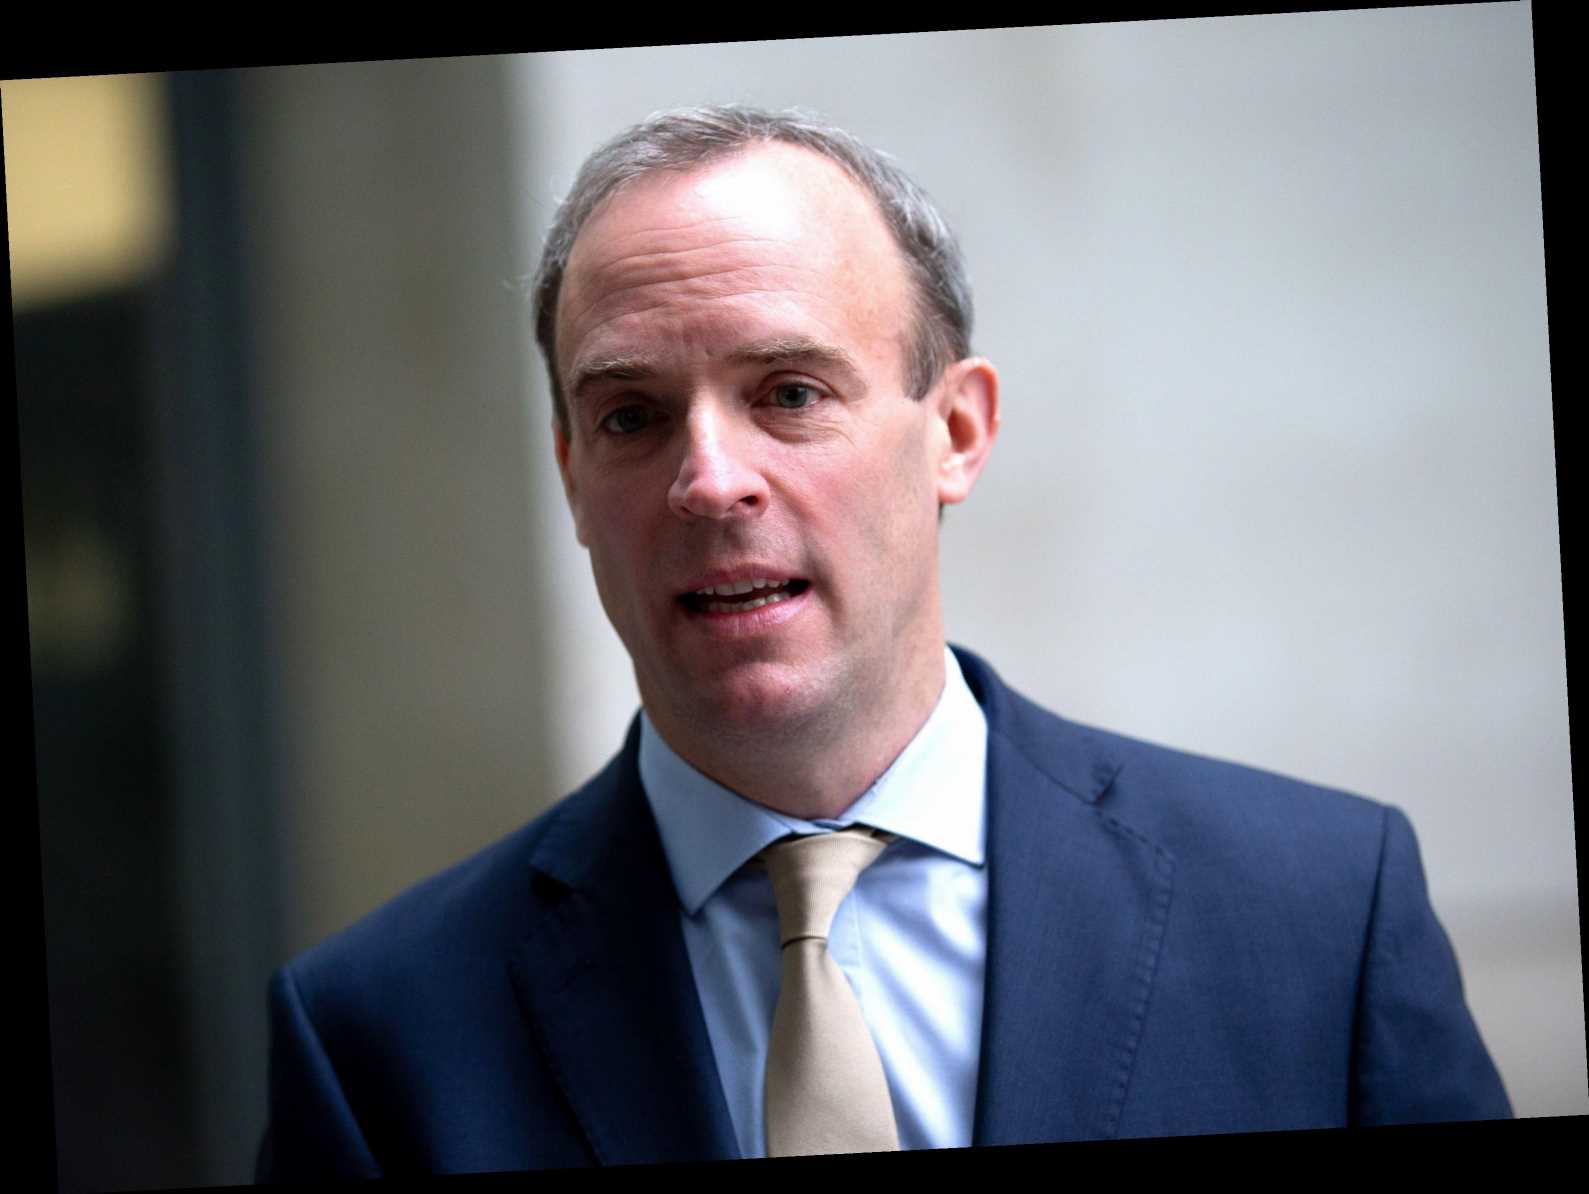 Dominic Raab says Brexit deal will boost all four nations of 'precious union' as SNP blasts it a 'disaster for Scotland'